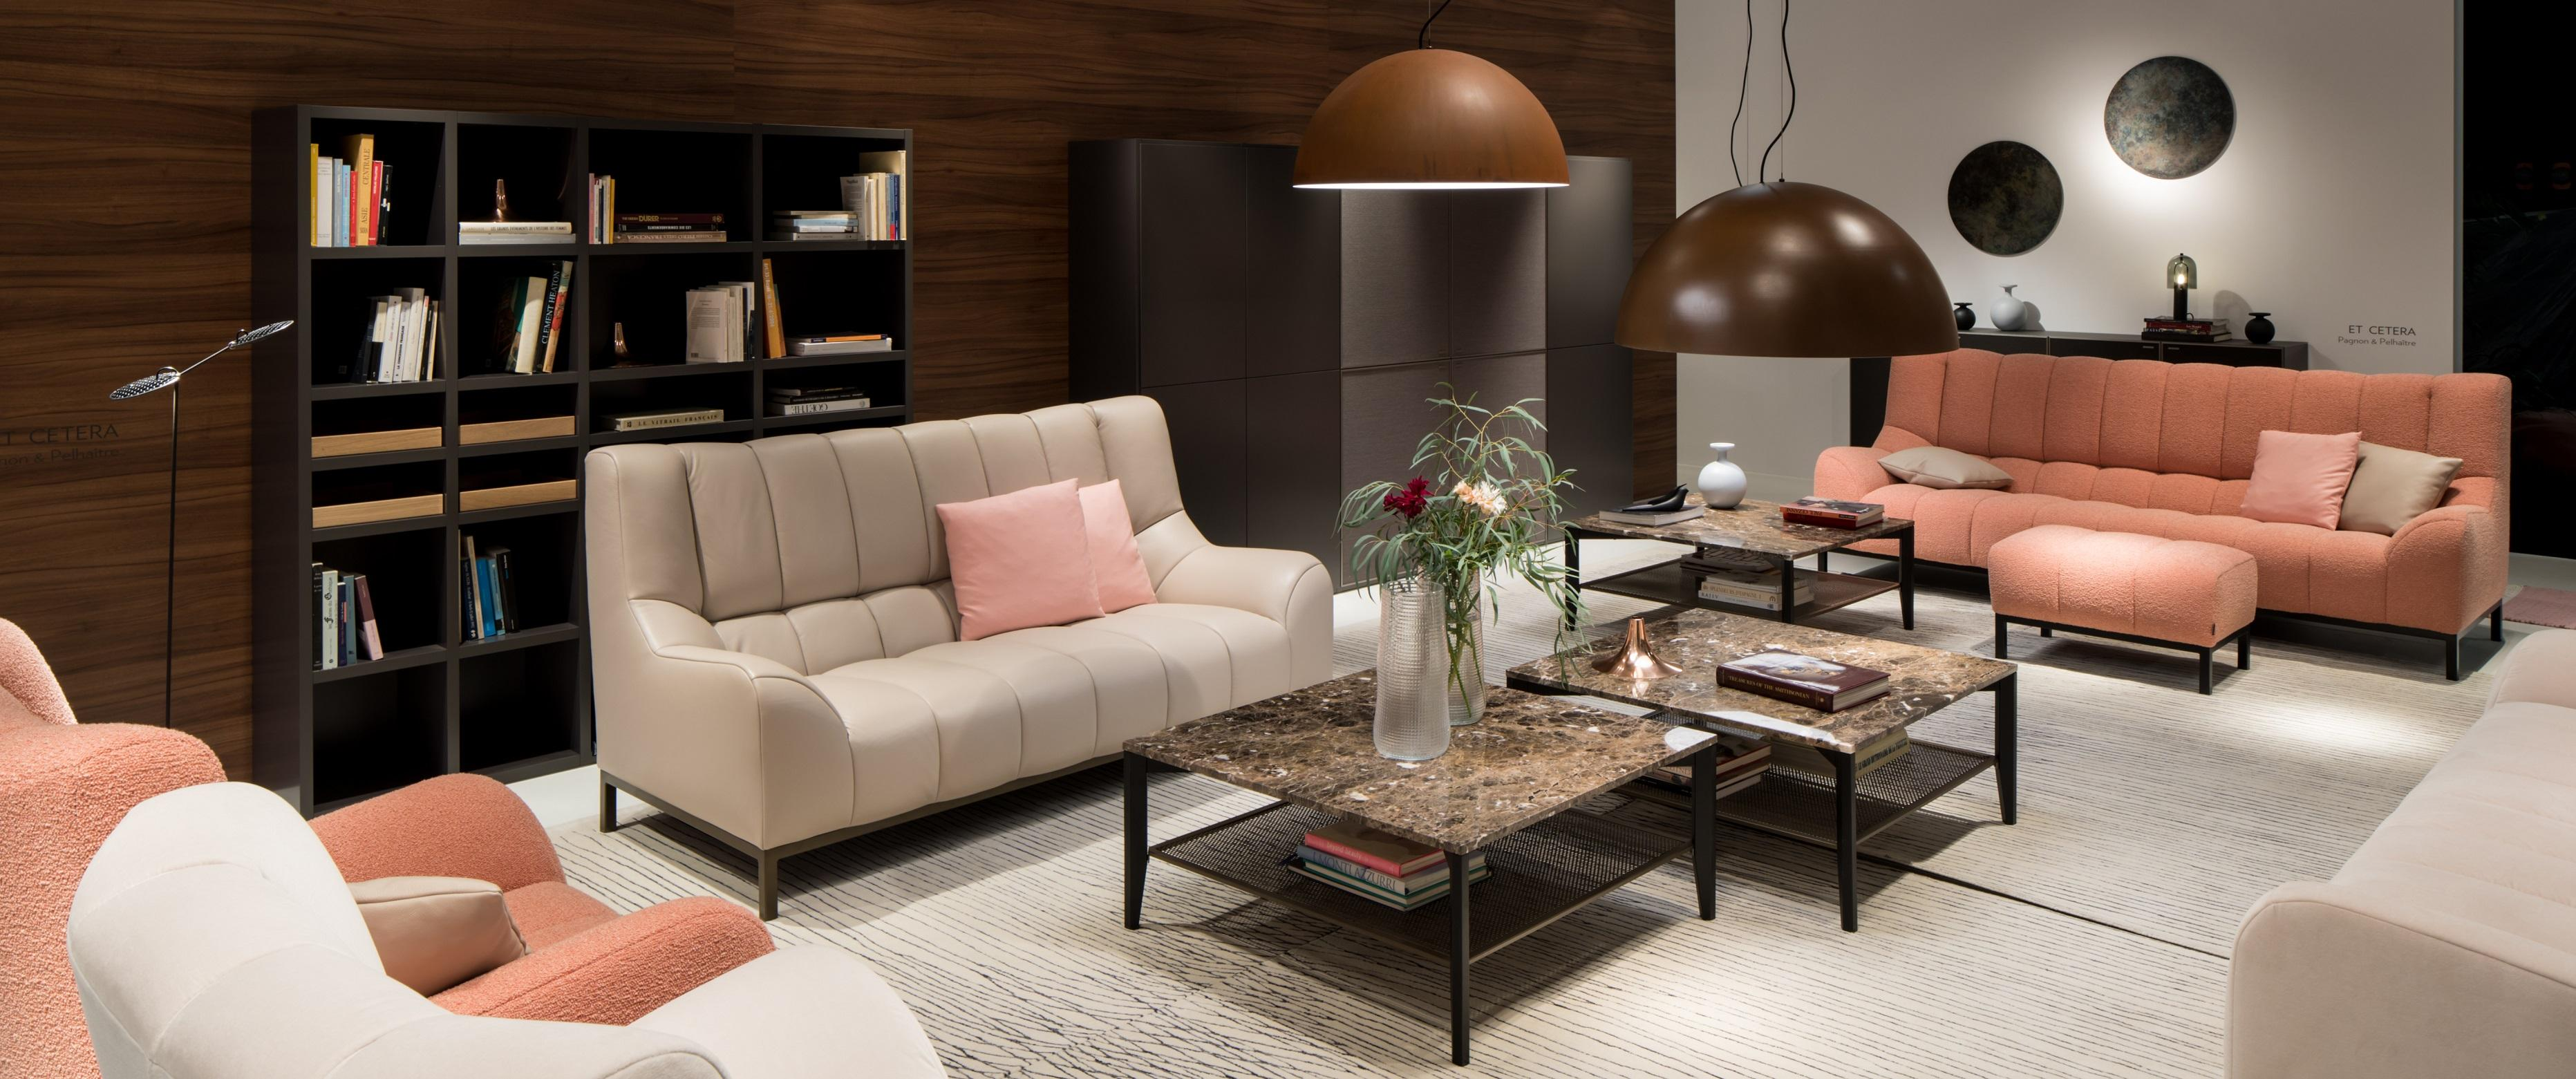 JANUARY FAIRS 2019 Ligne Roset